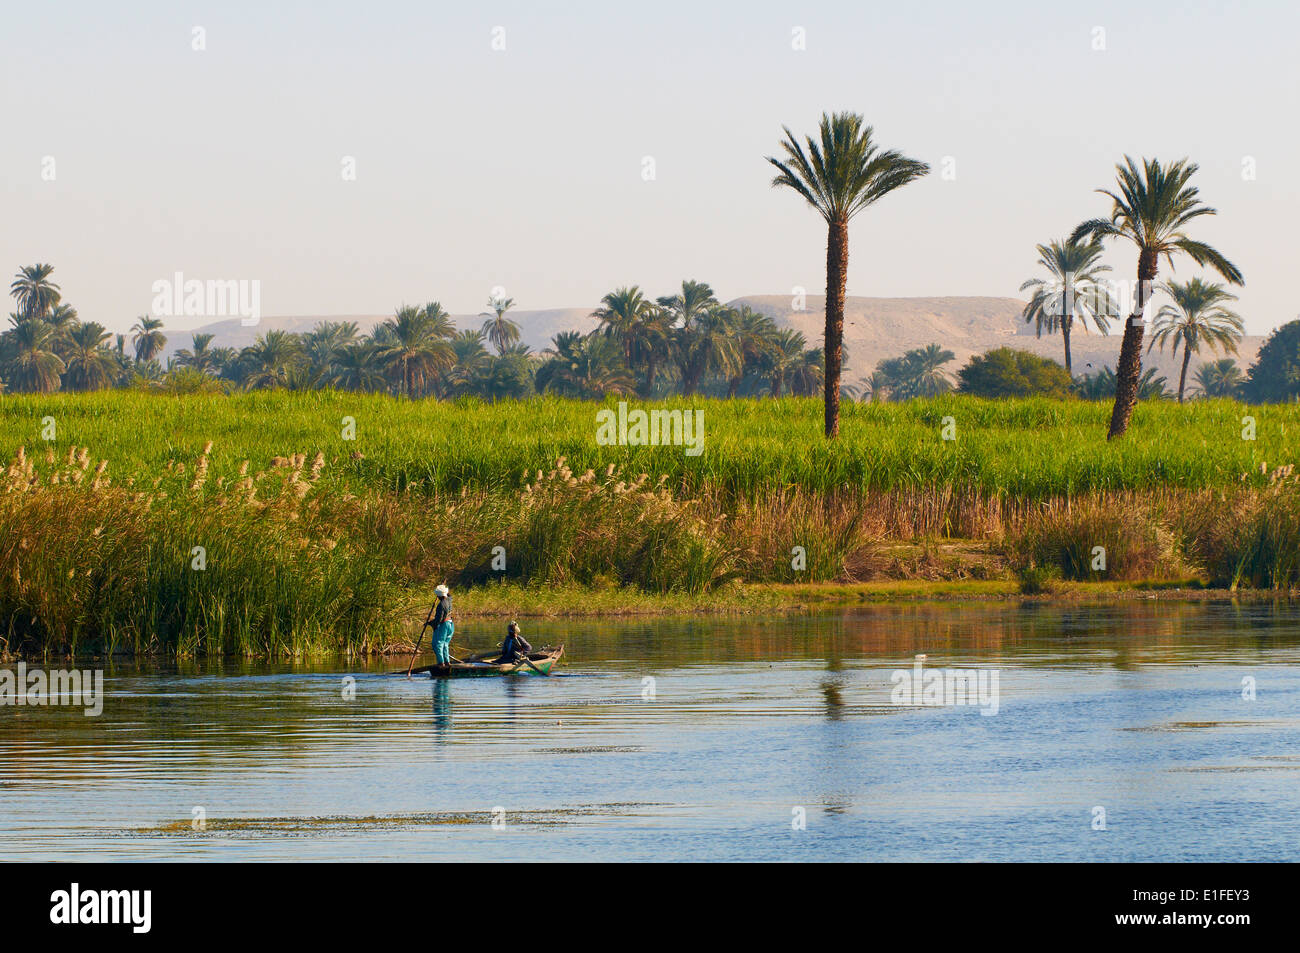 Egypt, cruise on the Nile river between Luxor and Aswan, fisher  - Stock Image